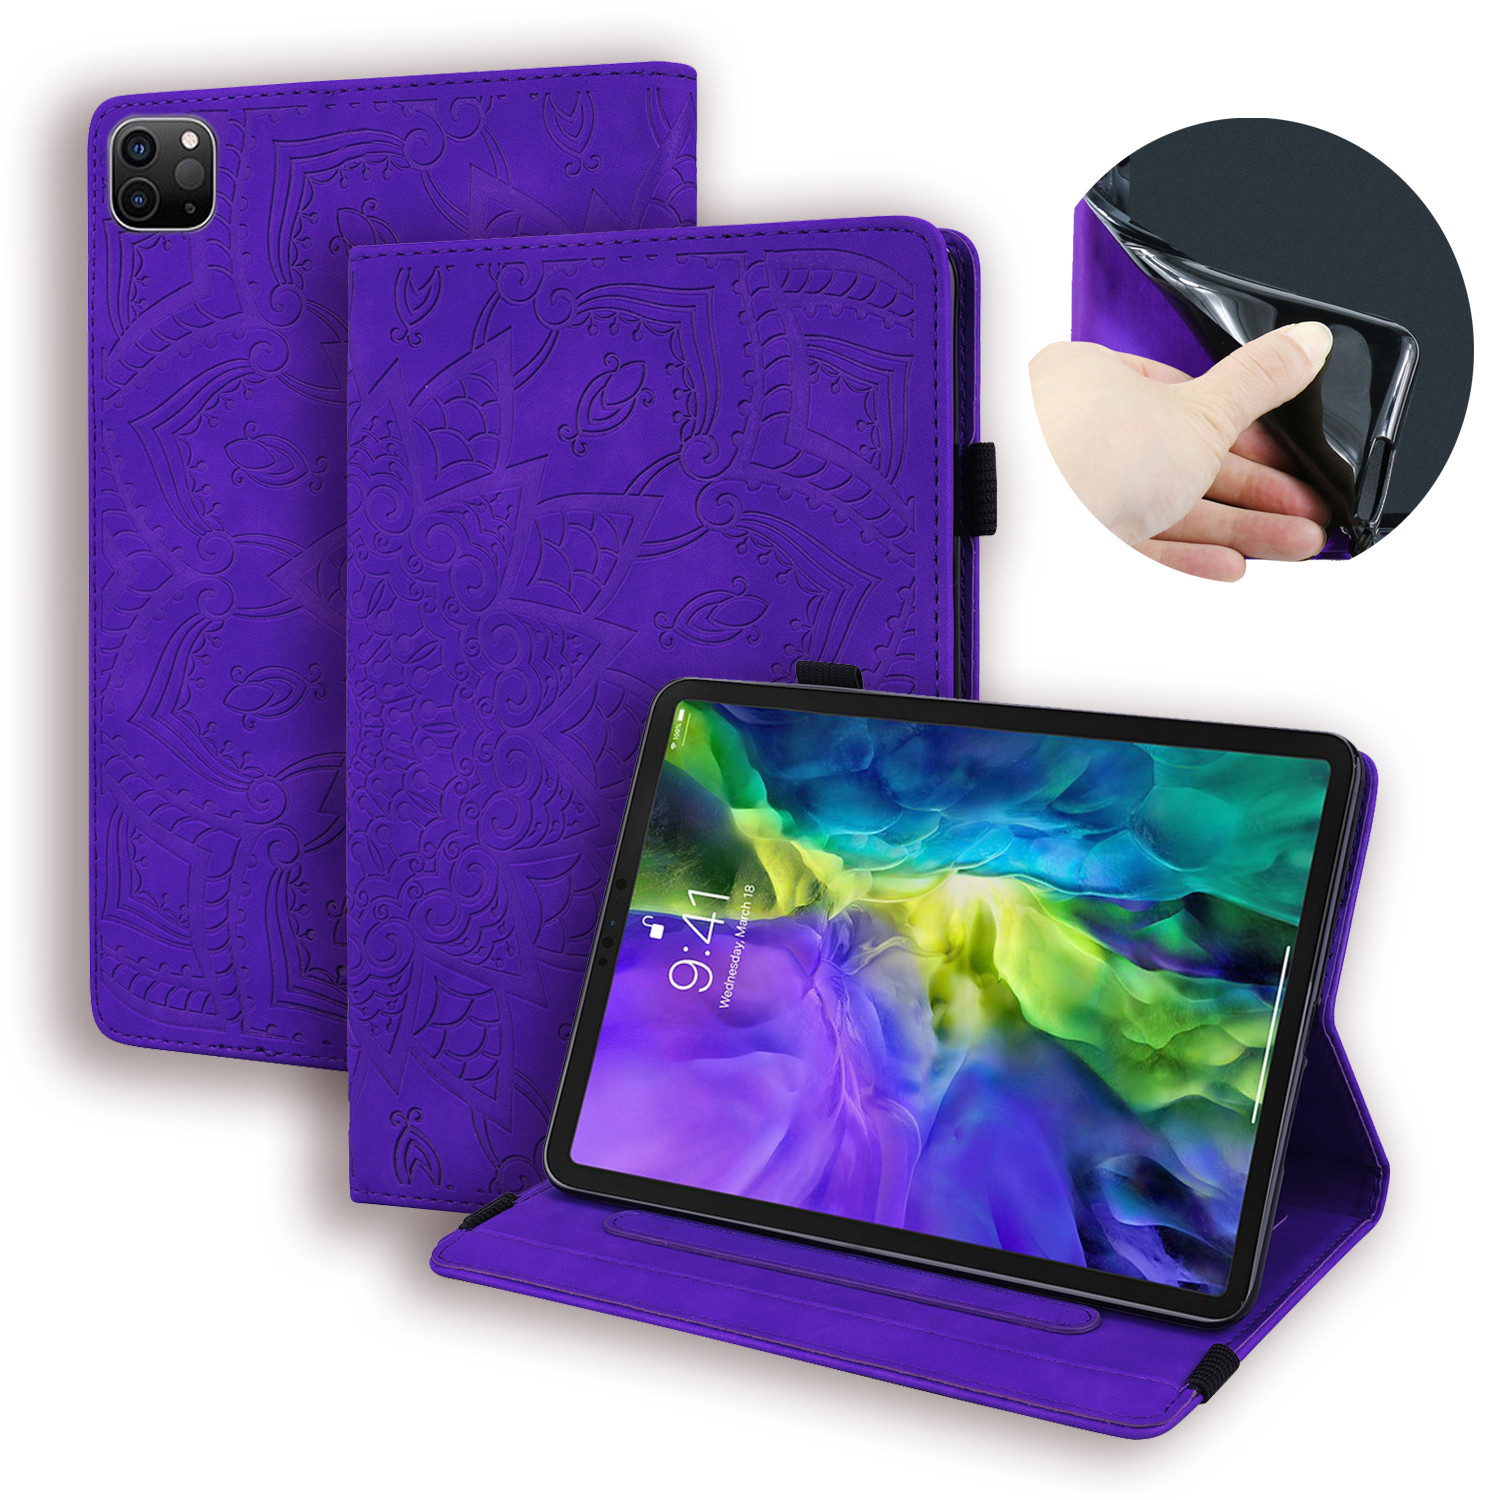 5 Khaki New Cover For iPad Pro 2020 Case 12 9 4th Generation Tablet Cover Folding 3D Embossed